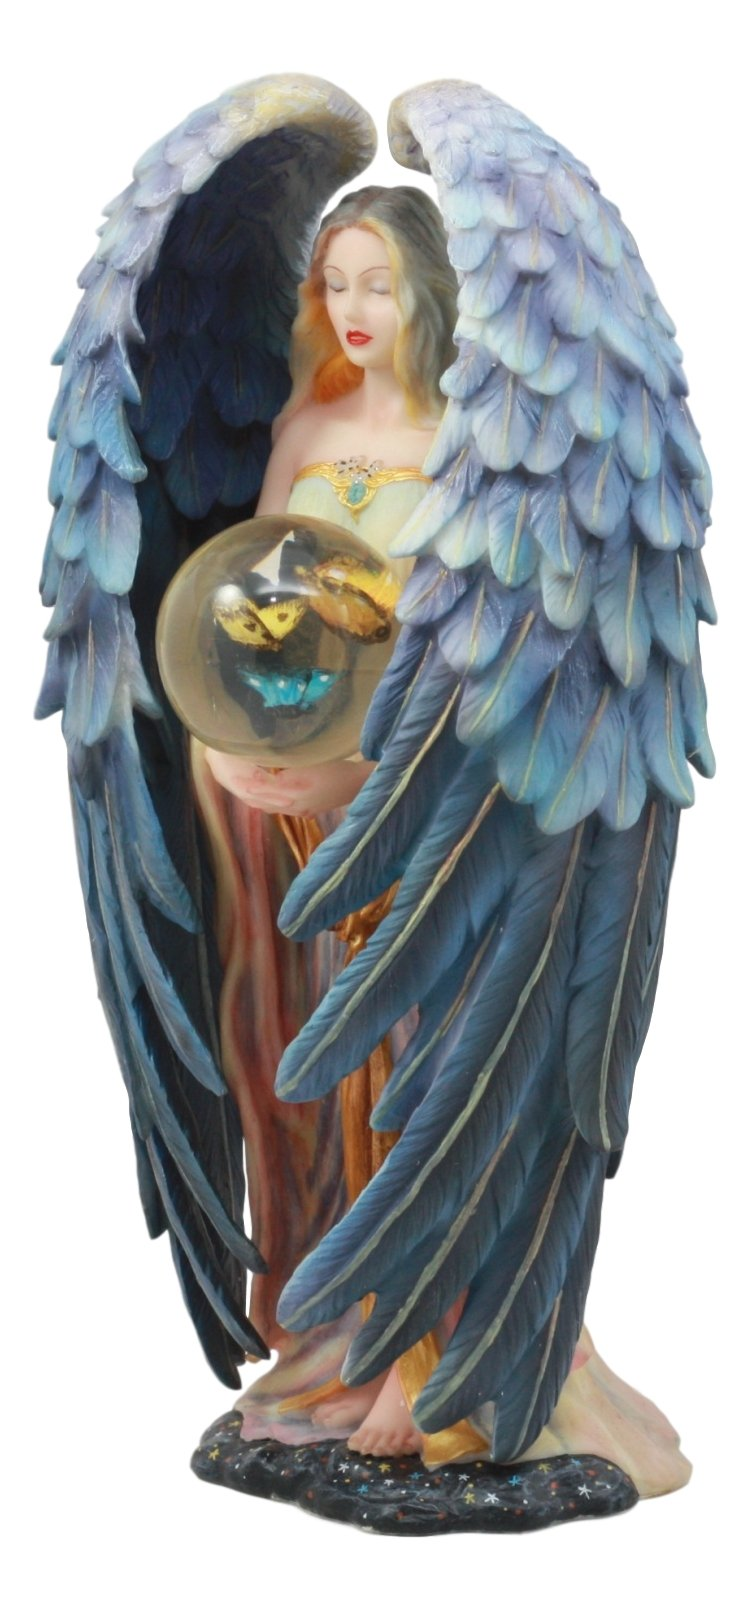 Sheila Wolk Tranquility Statue Masterpiece Beautiful Angel Holding Metamorphosis Butterfly Crystal Ball Figurine Decorative Art for Inspirational Housewarming Gift Fantasy Collector Item